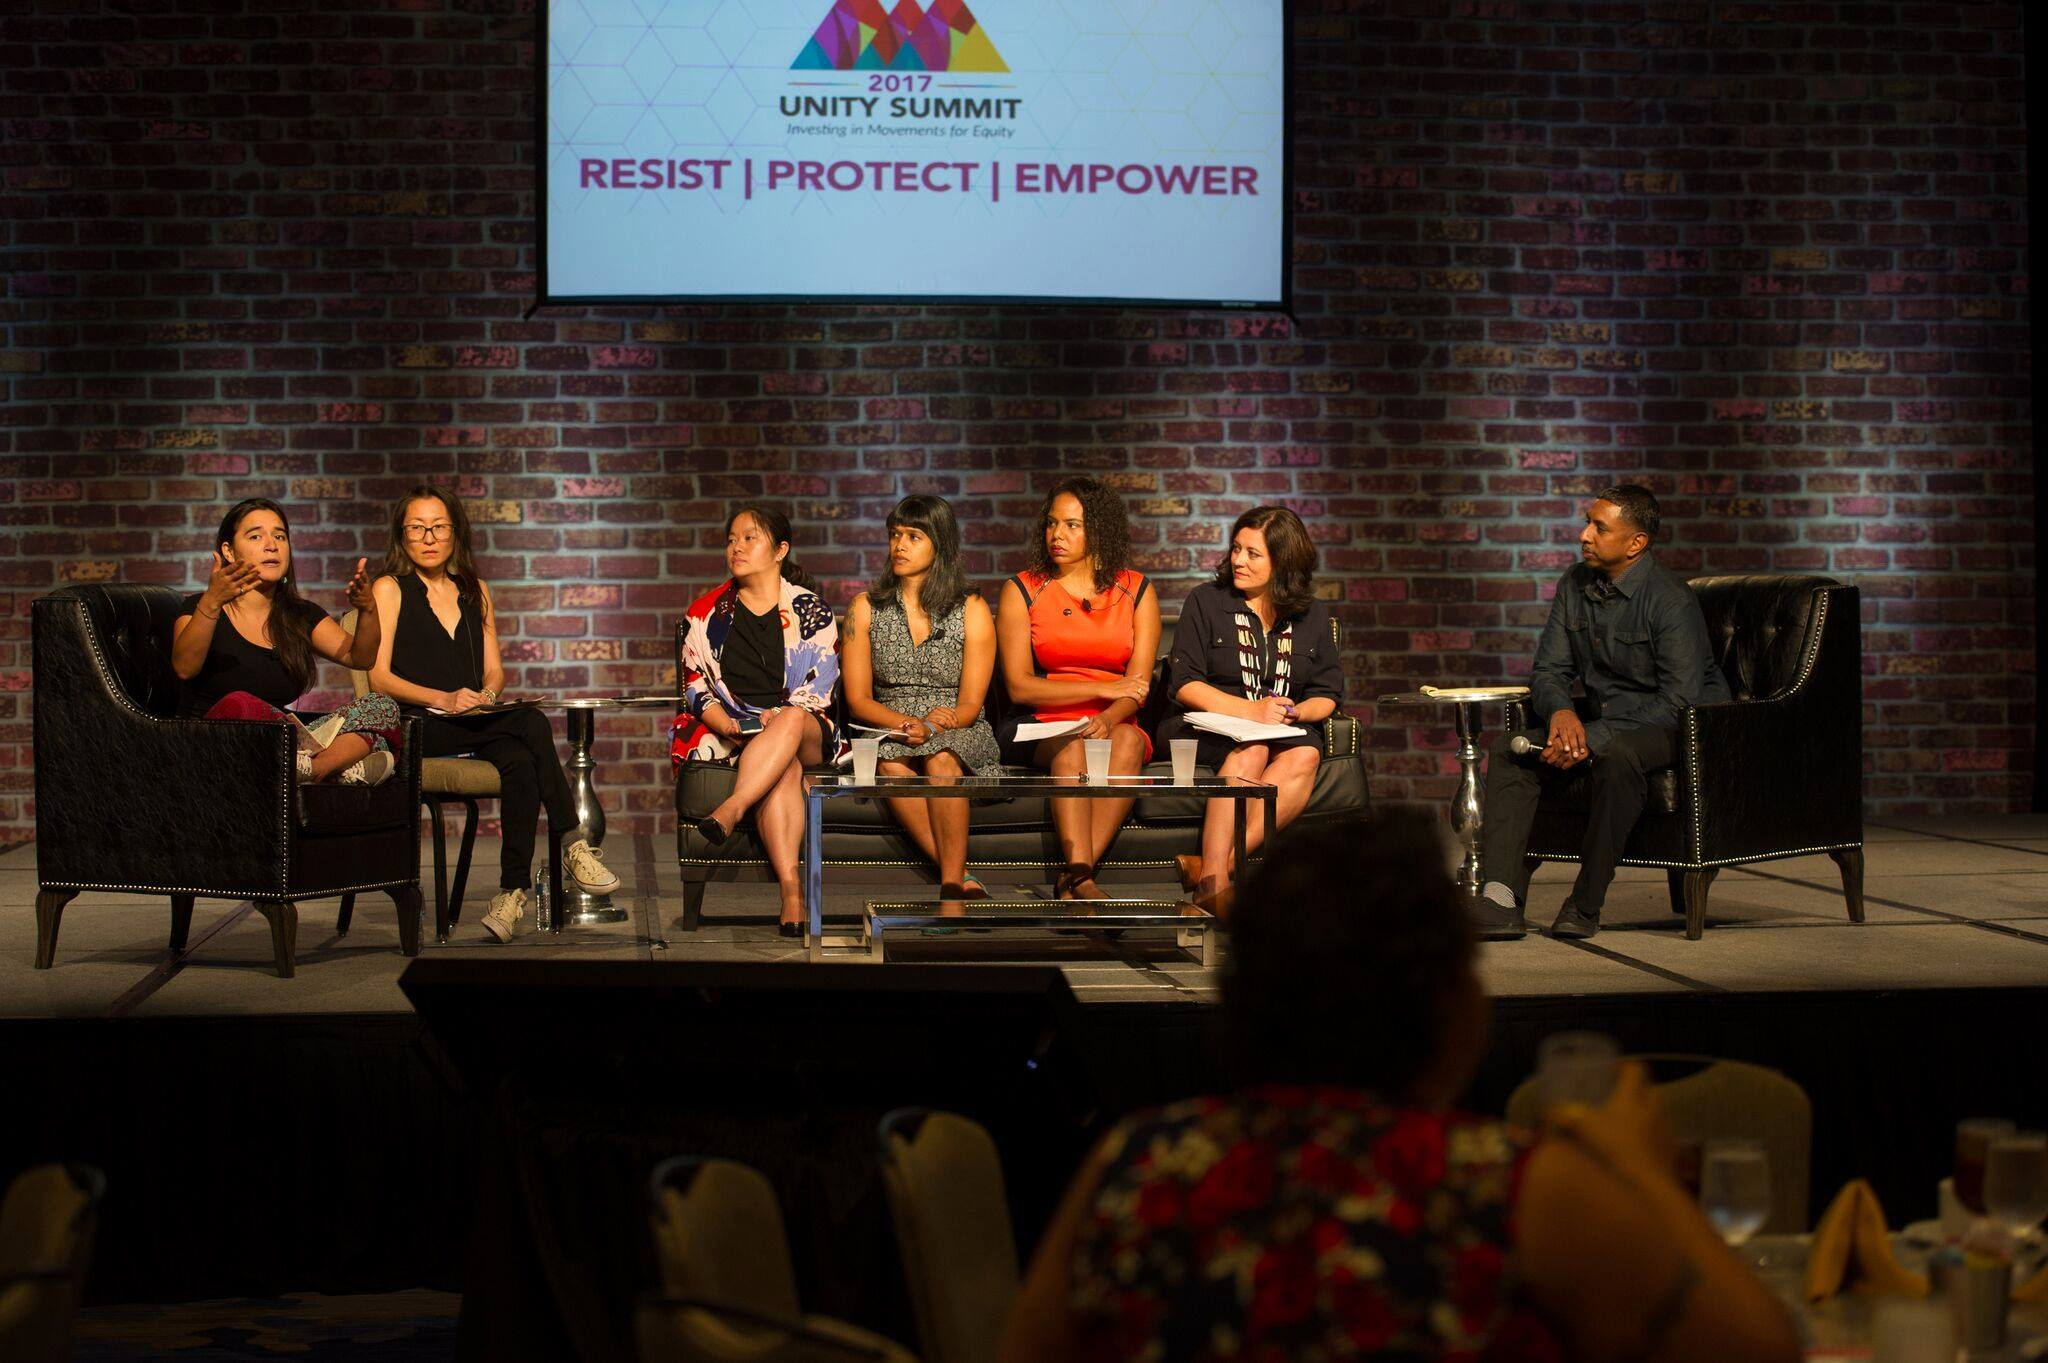 Photo, courtesy of Change Philanthropy Facebook page, depicts a plenary discussion at the 2017 Unity Summit.